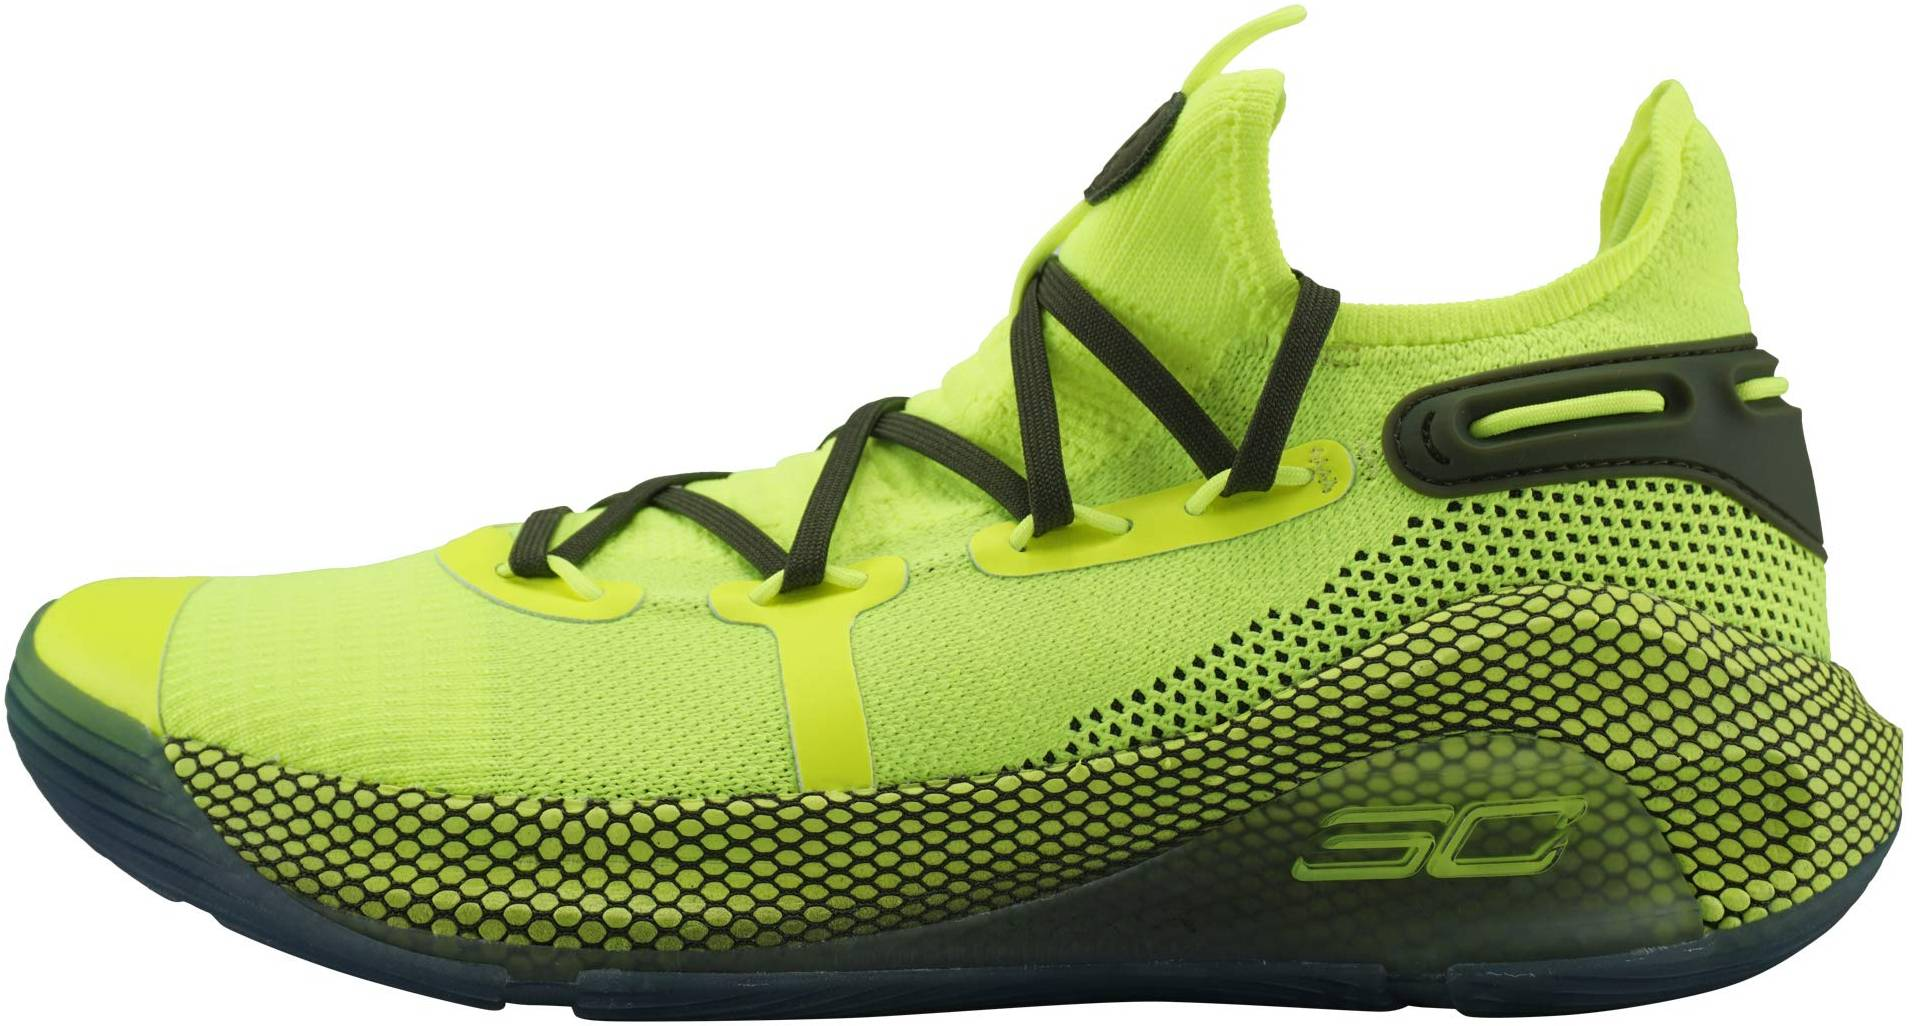 arma auditoría amanecer  Under Armour Curry 6 - Deals ($90), Facts, Reviews (2021) | RunRepeat